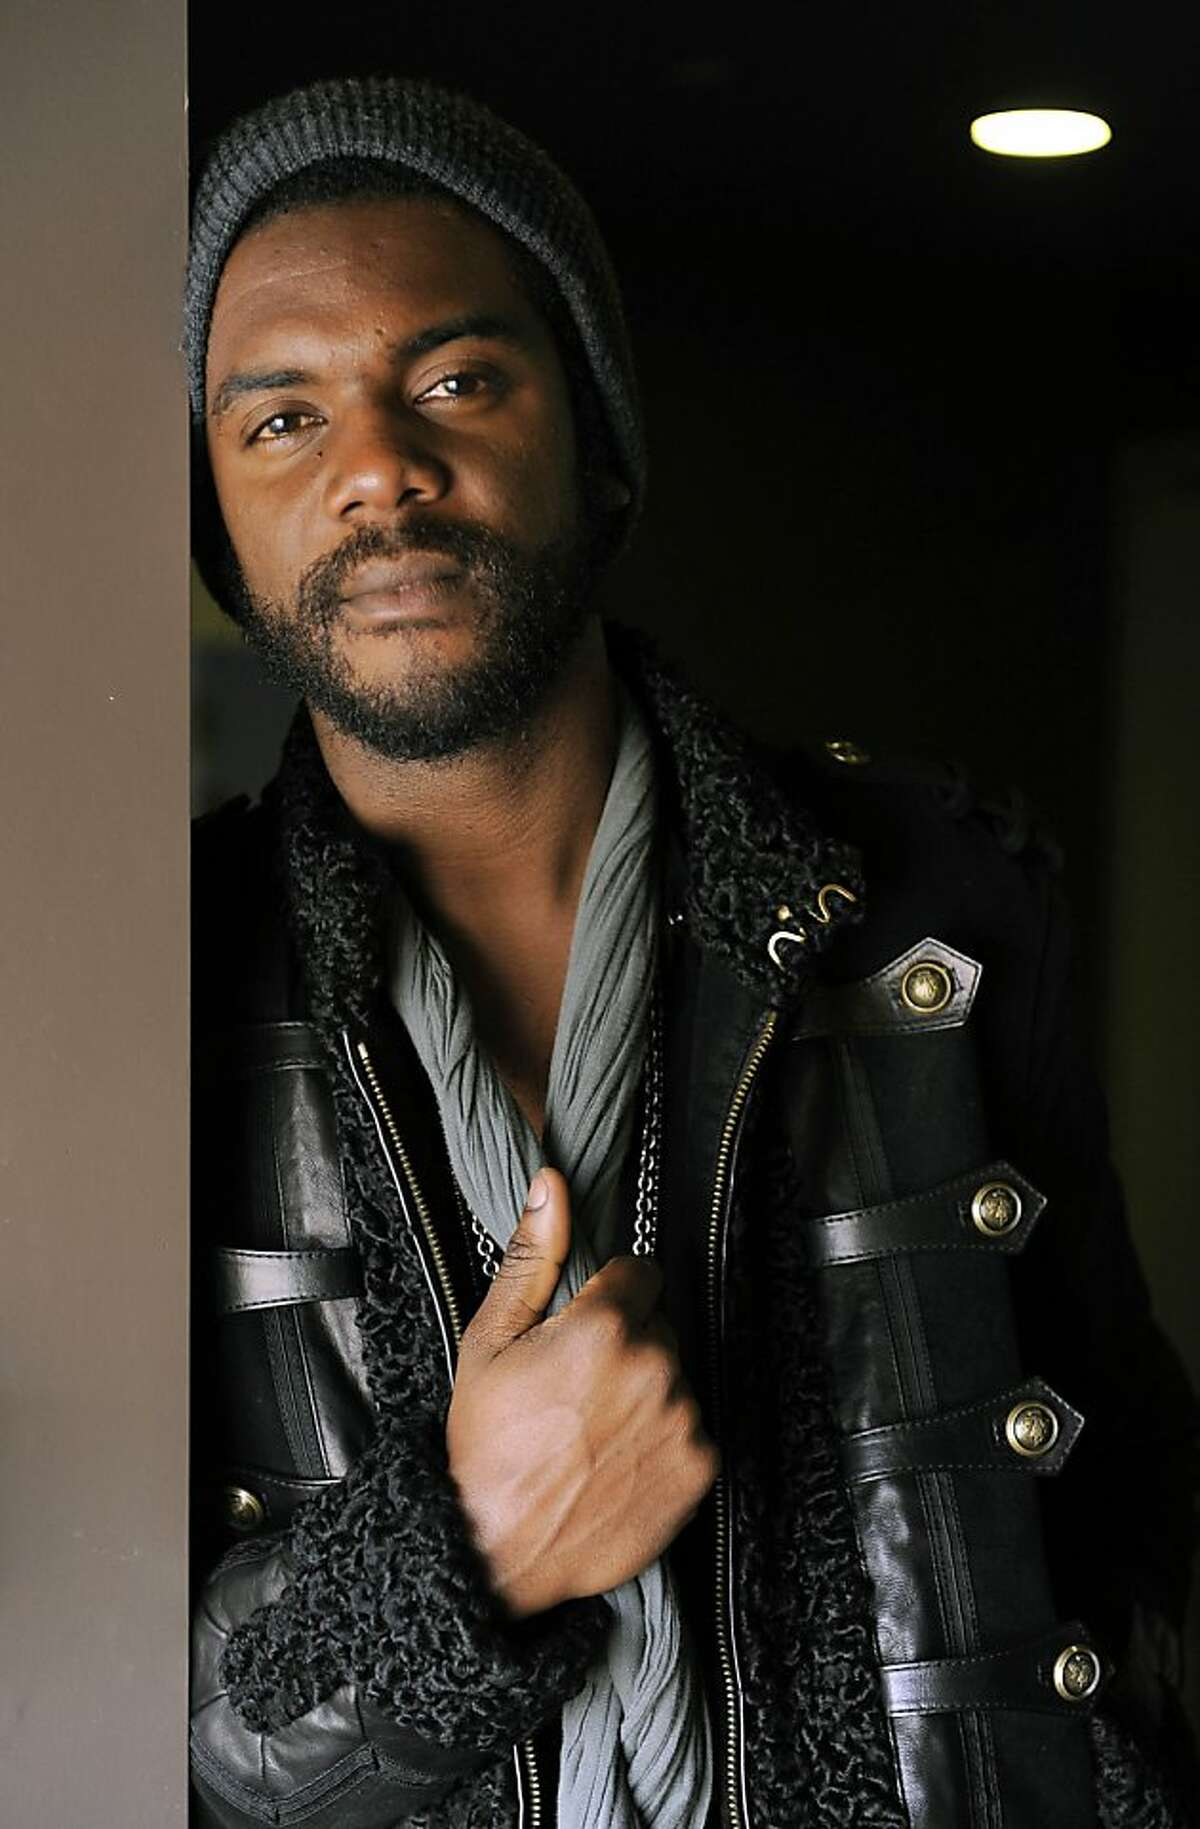 """This Oct. 23, 2012 photo shows guitarist Gary Clark Jr., posing for a portrait at The BLVD Hotel in Los Angeles. Clark's latest album, """"Blak and Blu,"""" was released this week. (Photo by Chris Pizzello/Invision/AP)"""